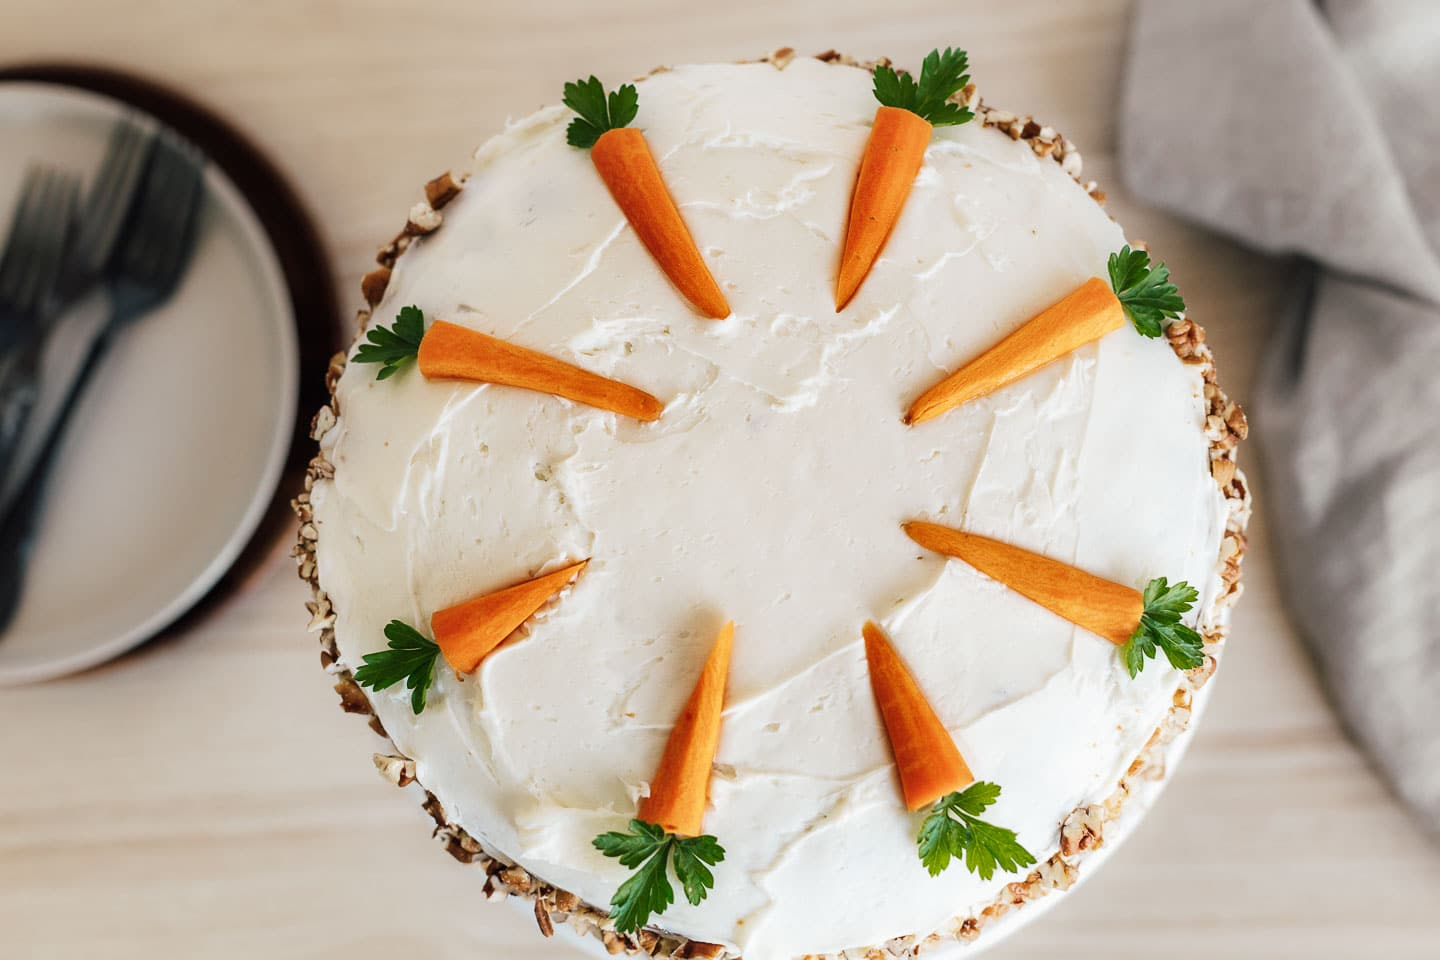 A top view of the decorated carrot cake.